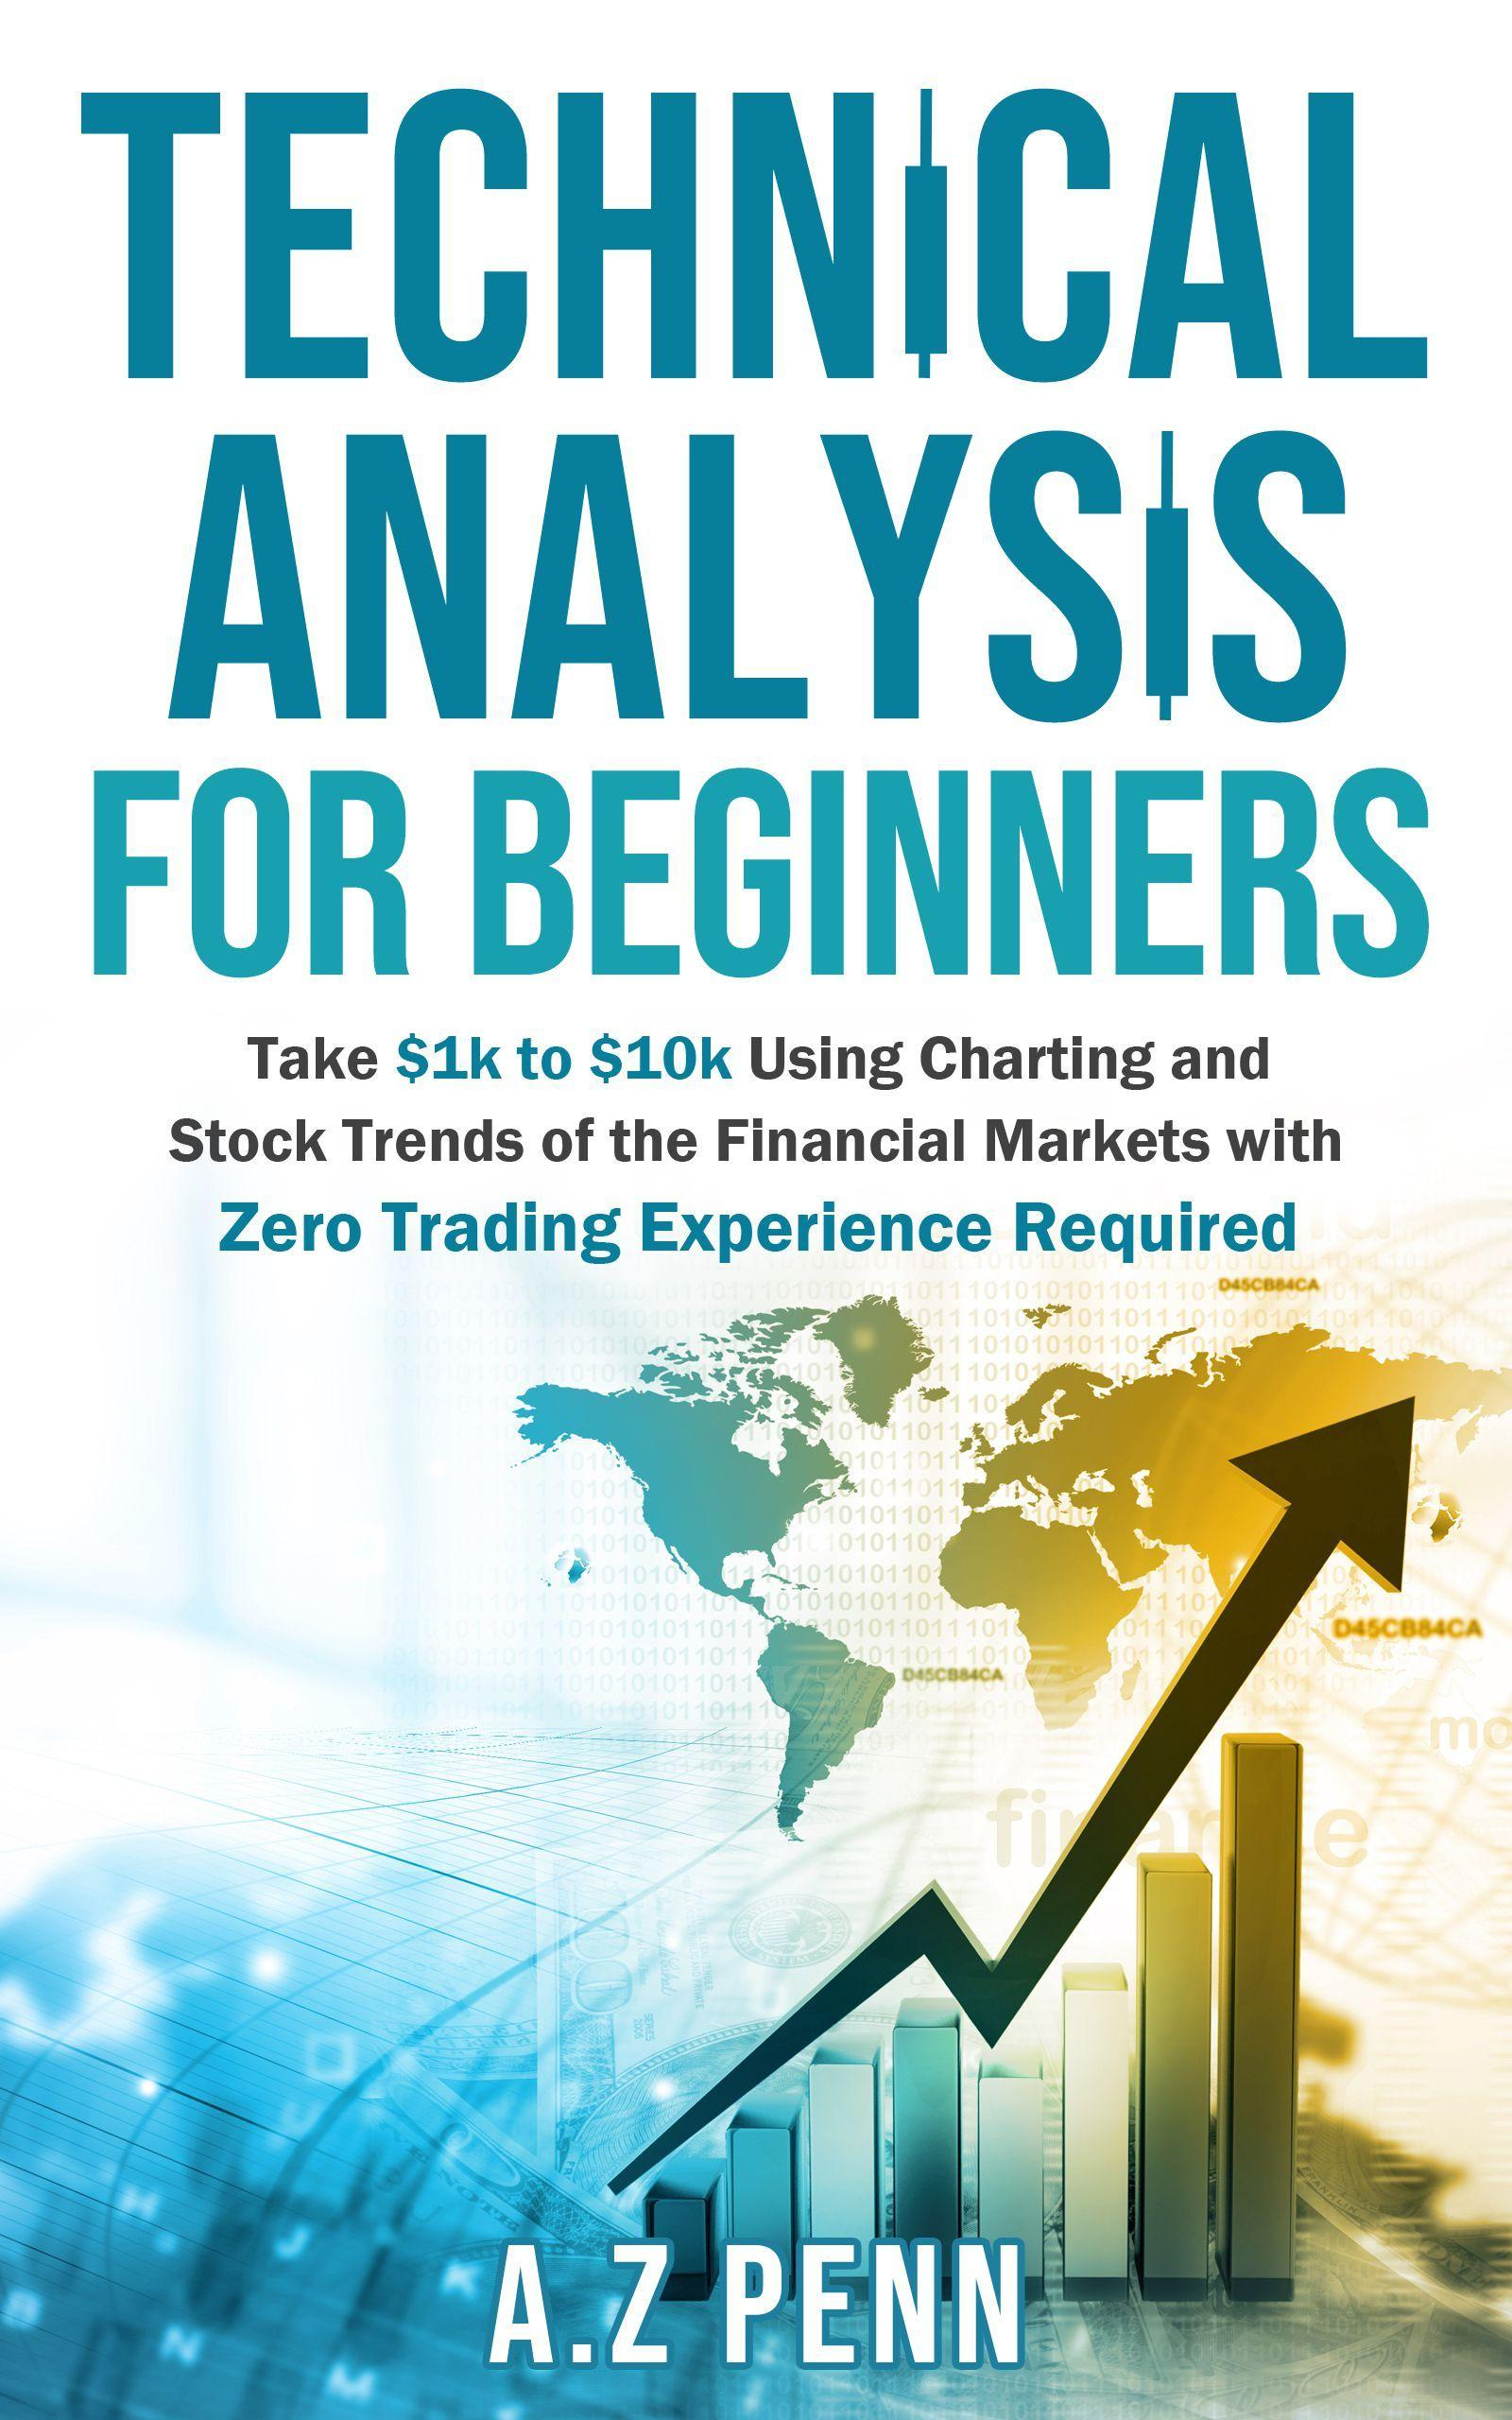 Technical Analysis for Beginners: Take $1k to $10k Using Charting and Stock Trends of the Financial Markets with Zero Trading Experience Required's Book Image